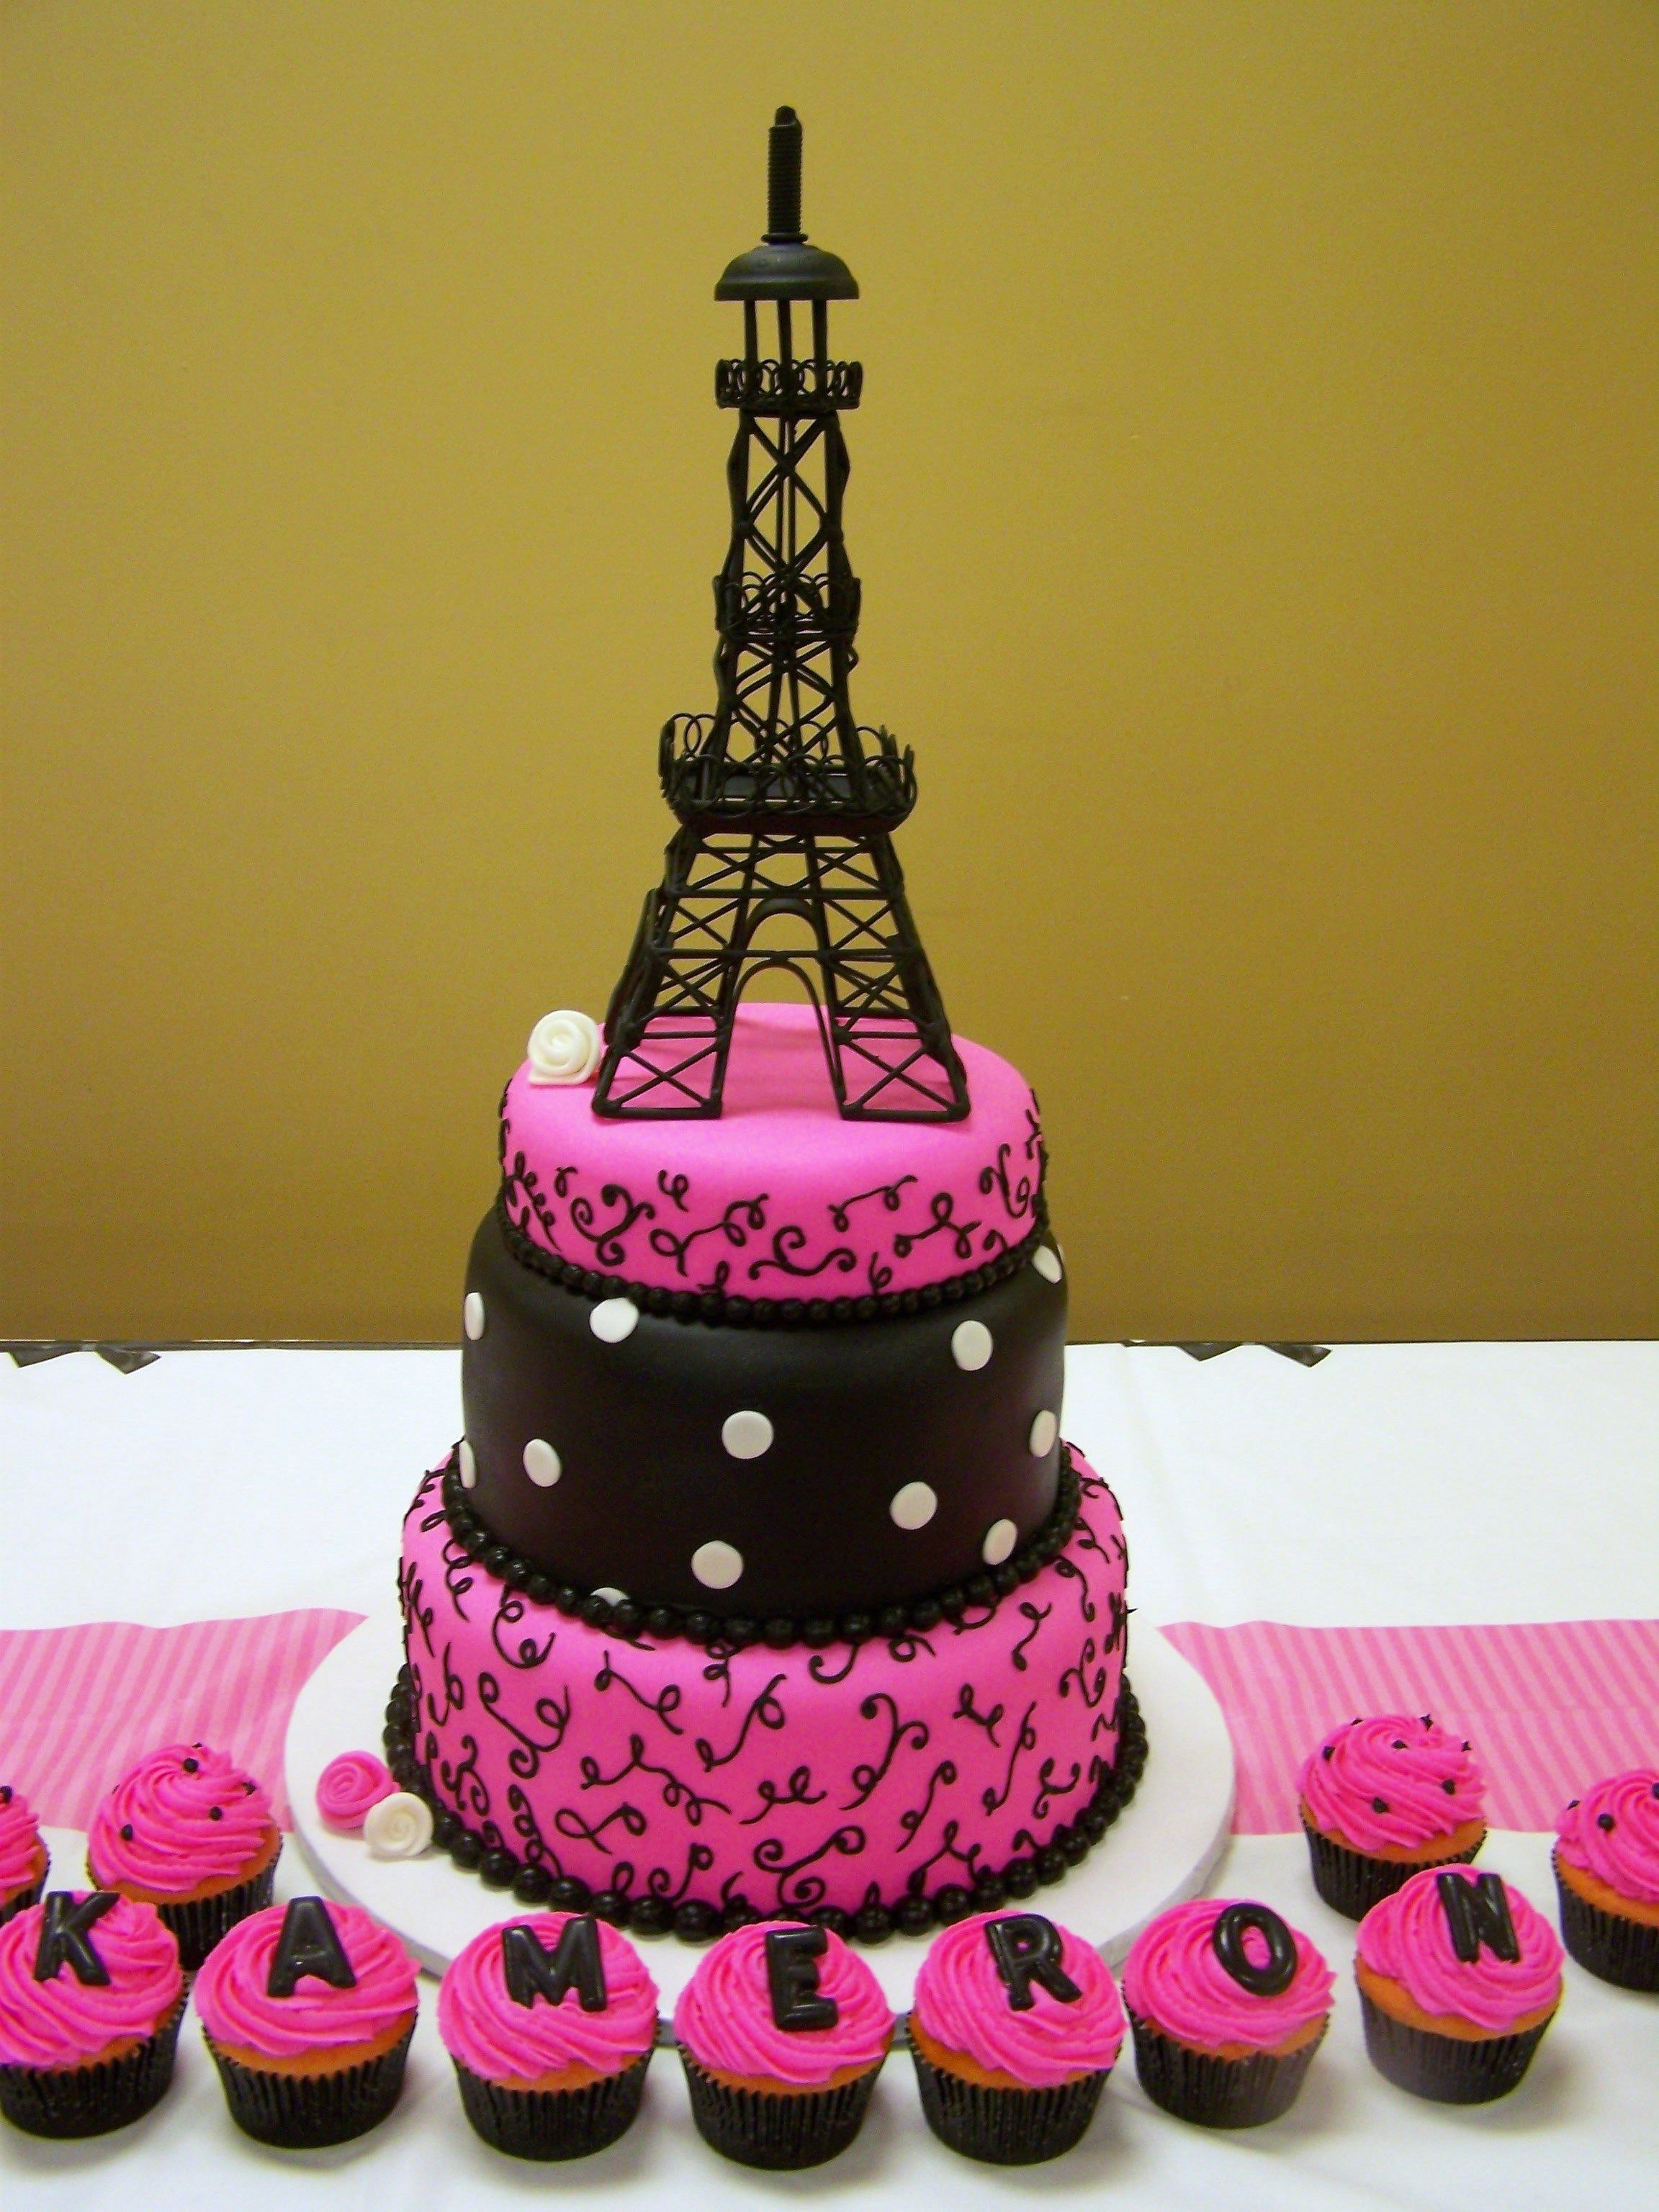 I Need Ideas For Decorating My Living Room: Paris Themed Cake